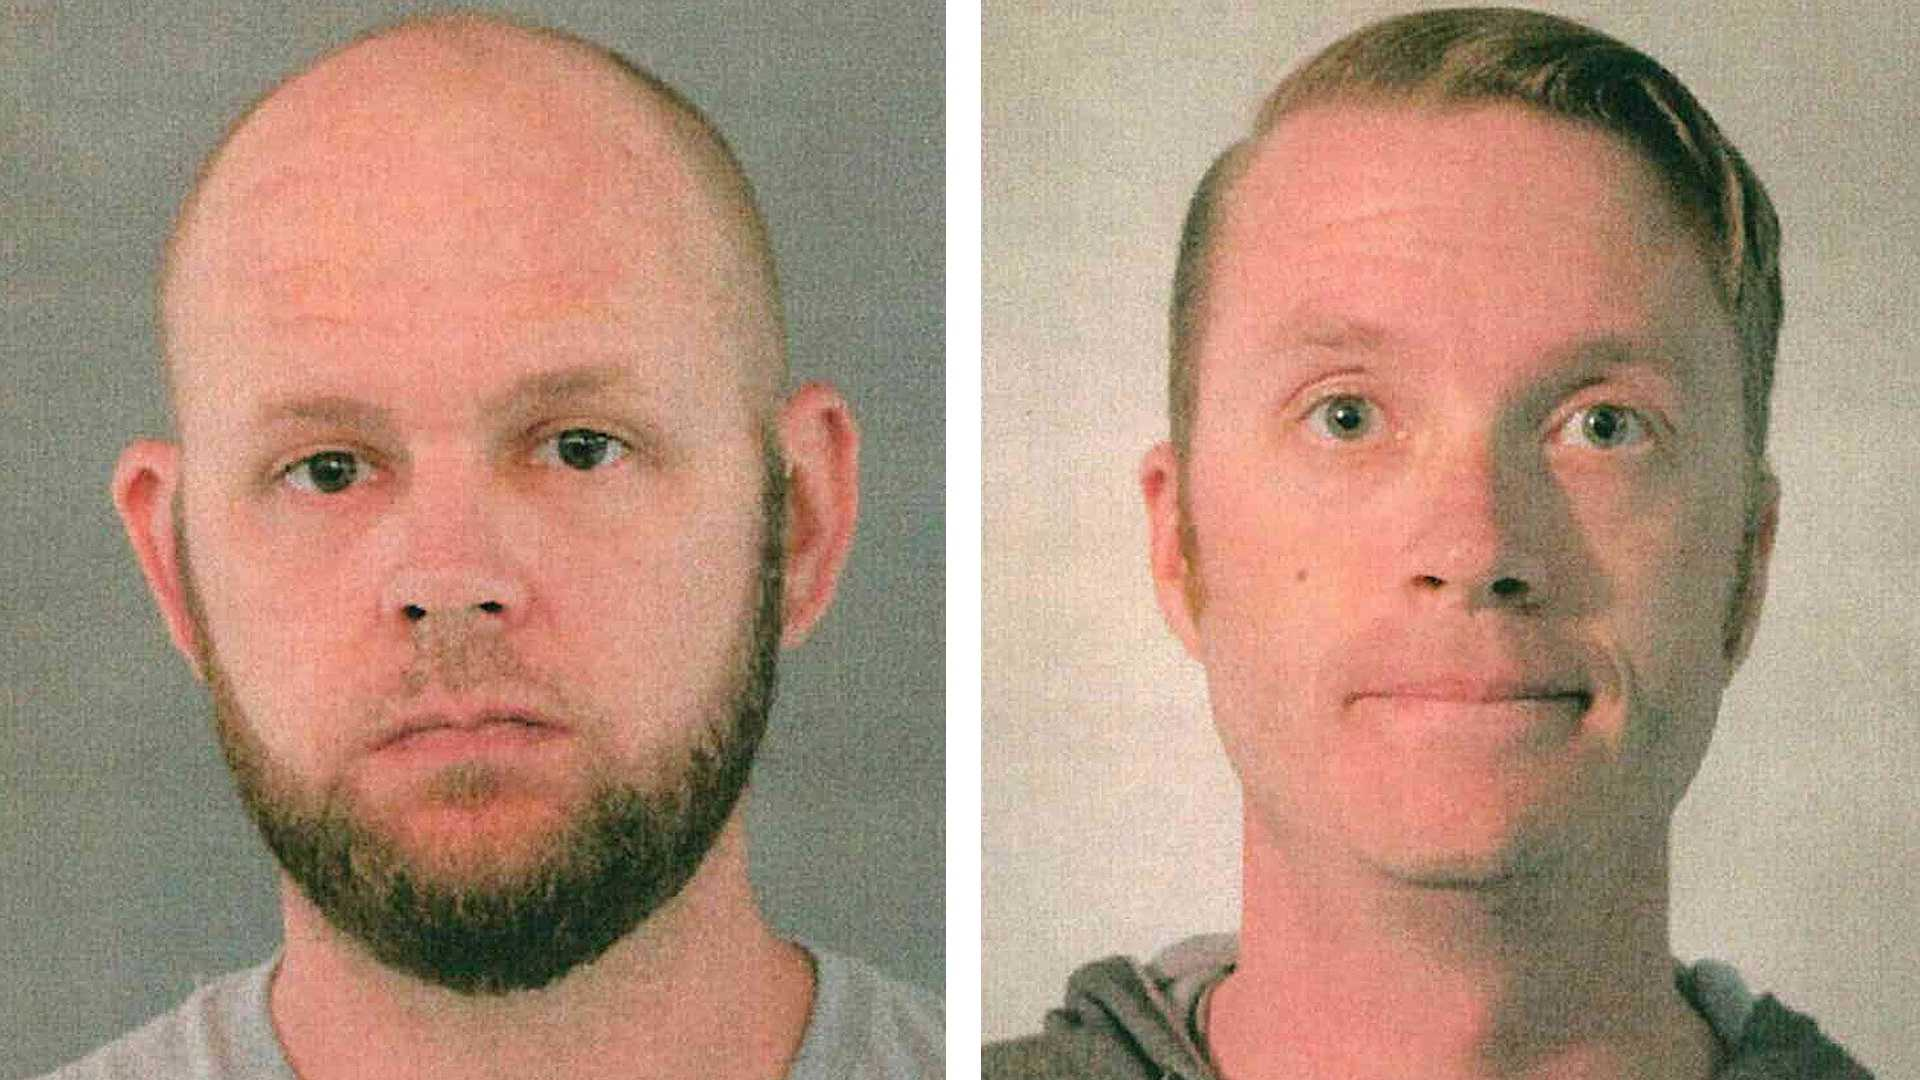 Donald Wade Jr. and Thomas McPike are accused of filming young girls as they undressed at the Vacaville Performing Arts Theater, the Vacaville Police Department said.